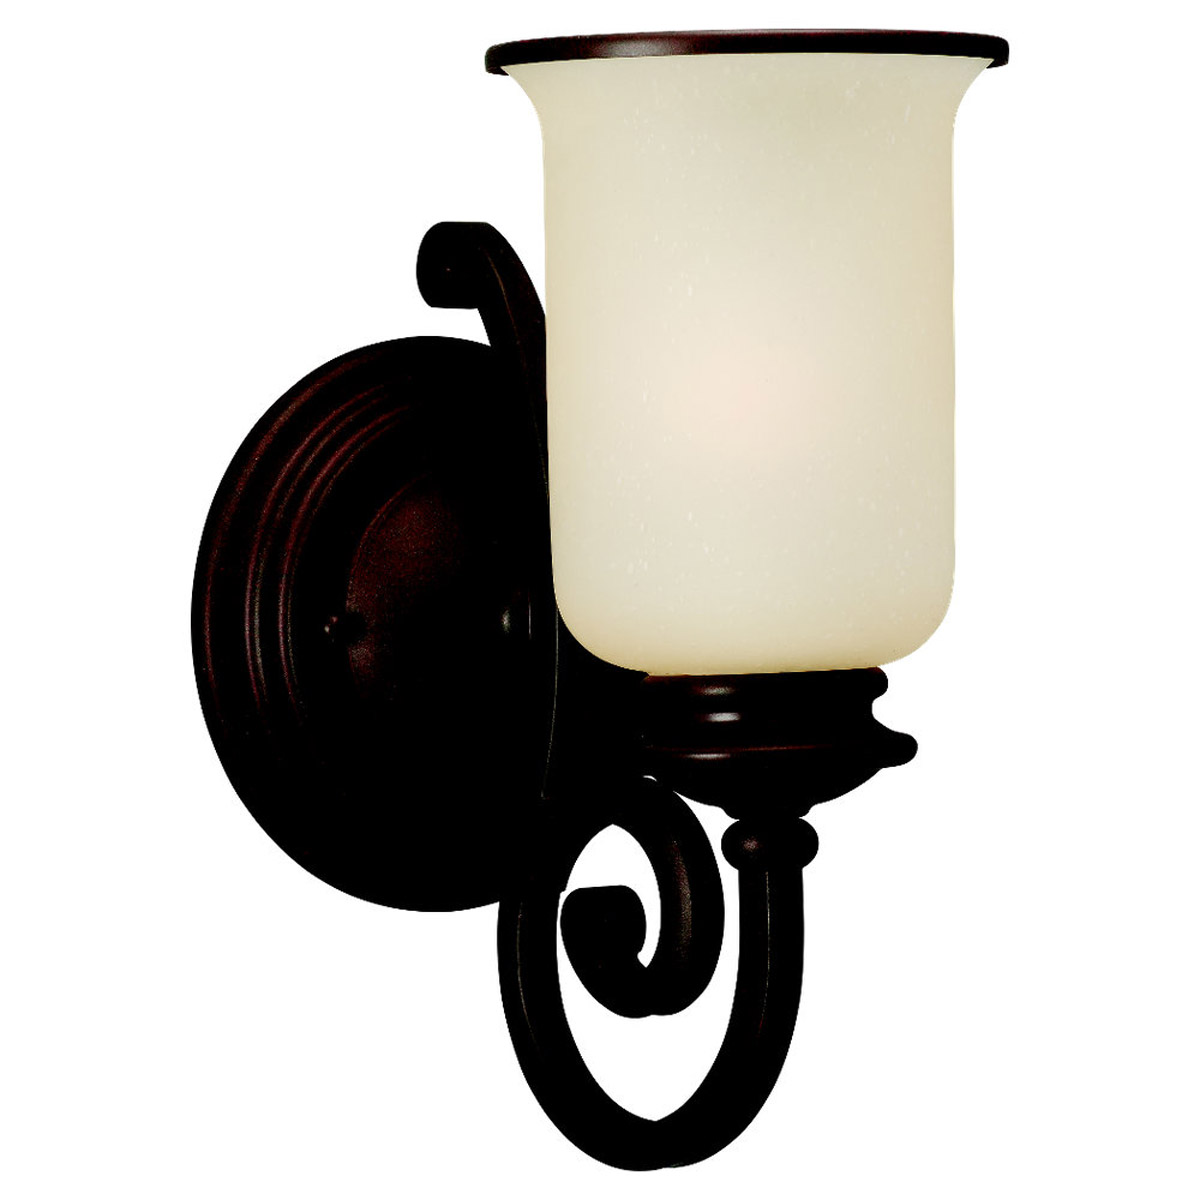 Sea Gull Lighting Acadia 1 Light Bath Vanity in Misted Bronze 41145-814